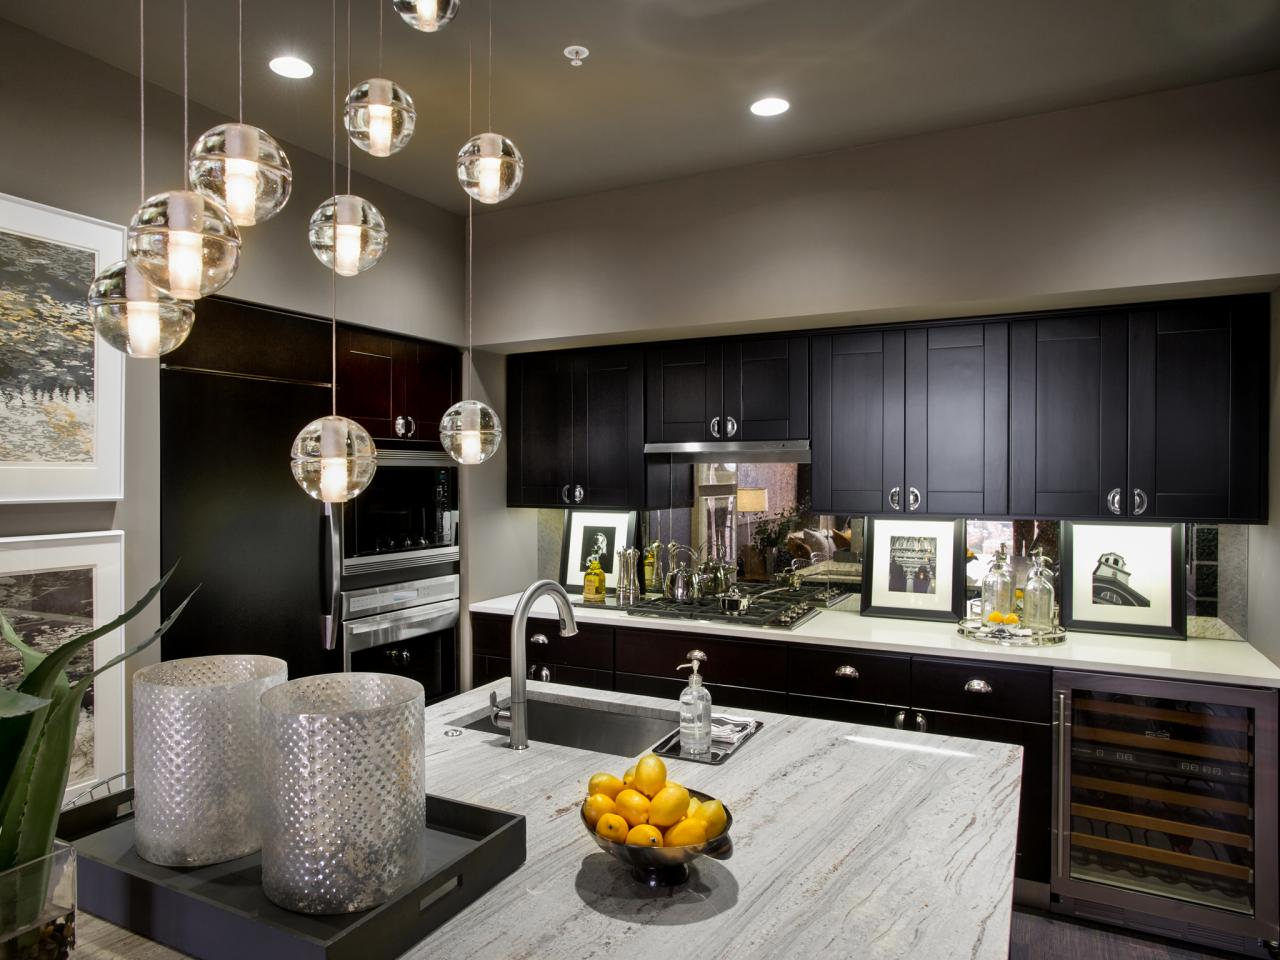 Lighting Options For Kitchens Kitchen Countertop Options Pictures Ideas From Hgtv Hgtv